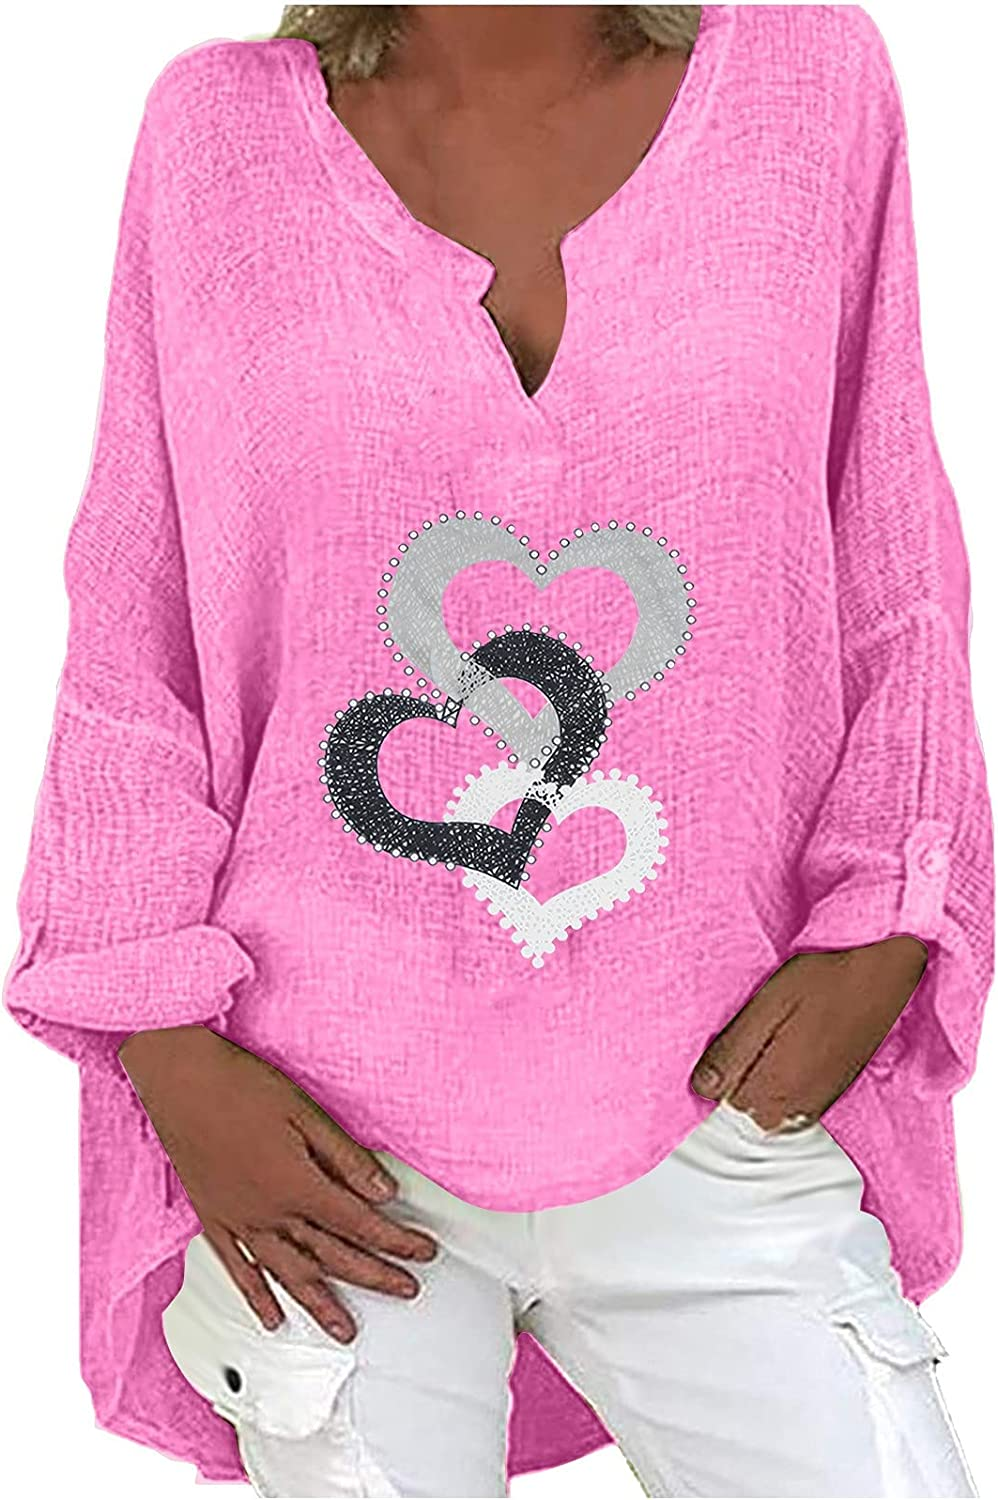 Womens Long Sleeve Tops, Women's V-Neck Printing Loose Casual Long Sleeve T-Shirt Blouse Tops